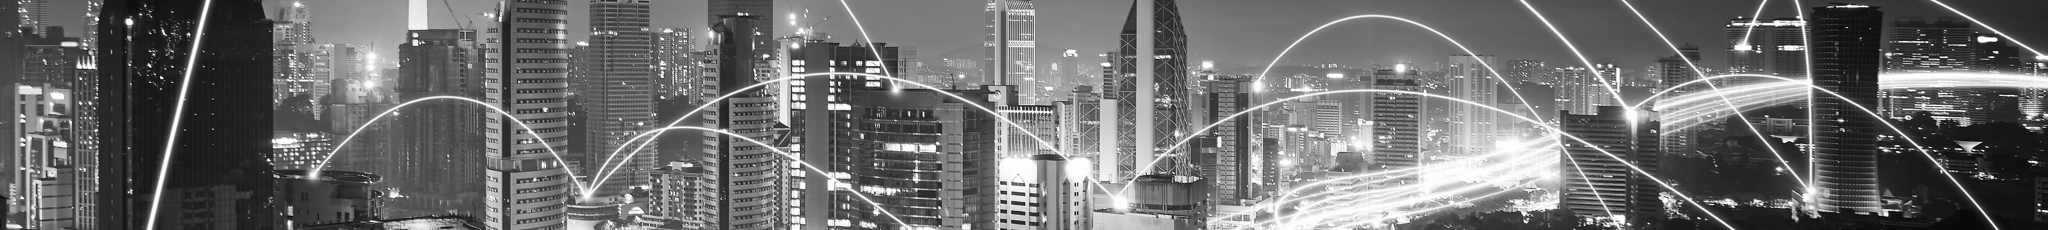 Banner image - city skyline